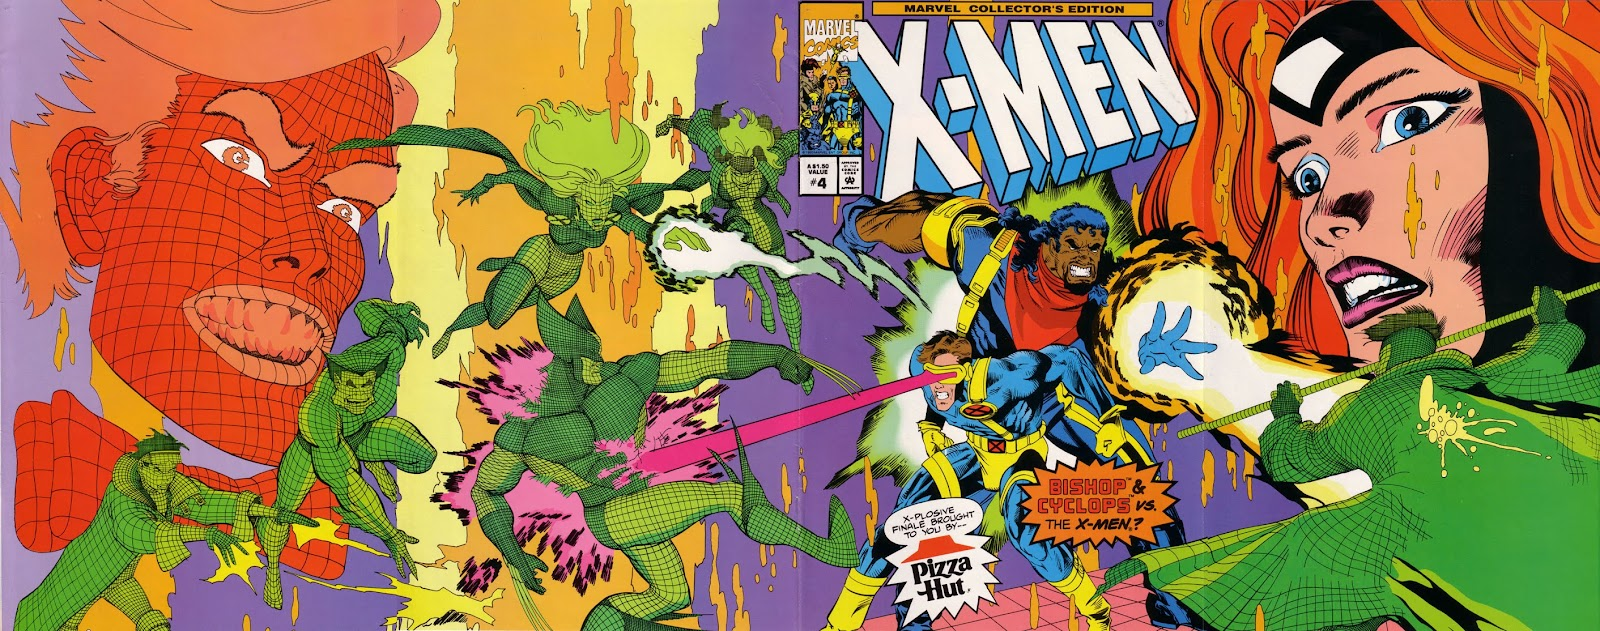 The X-Men Collectors Edition 4 Page 1